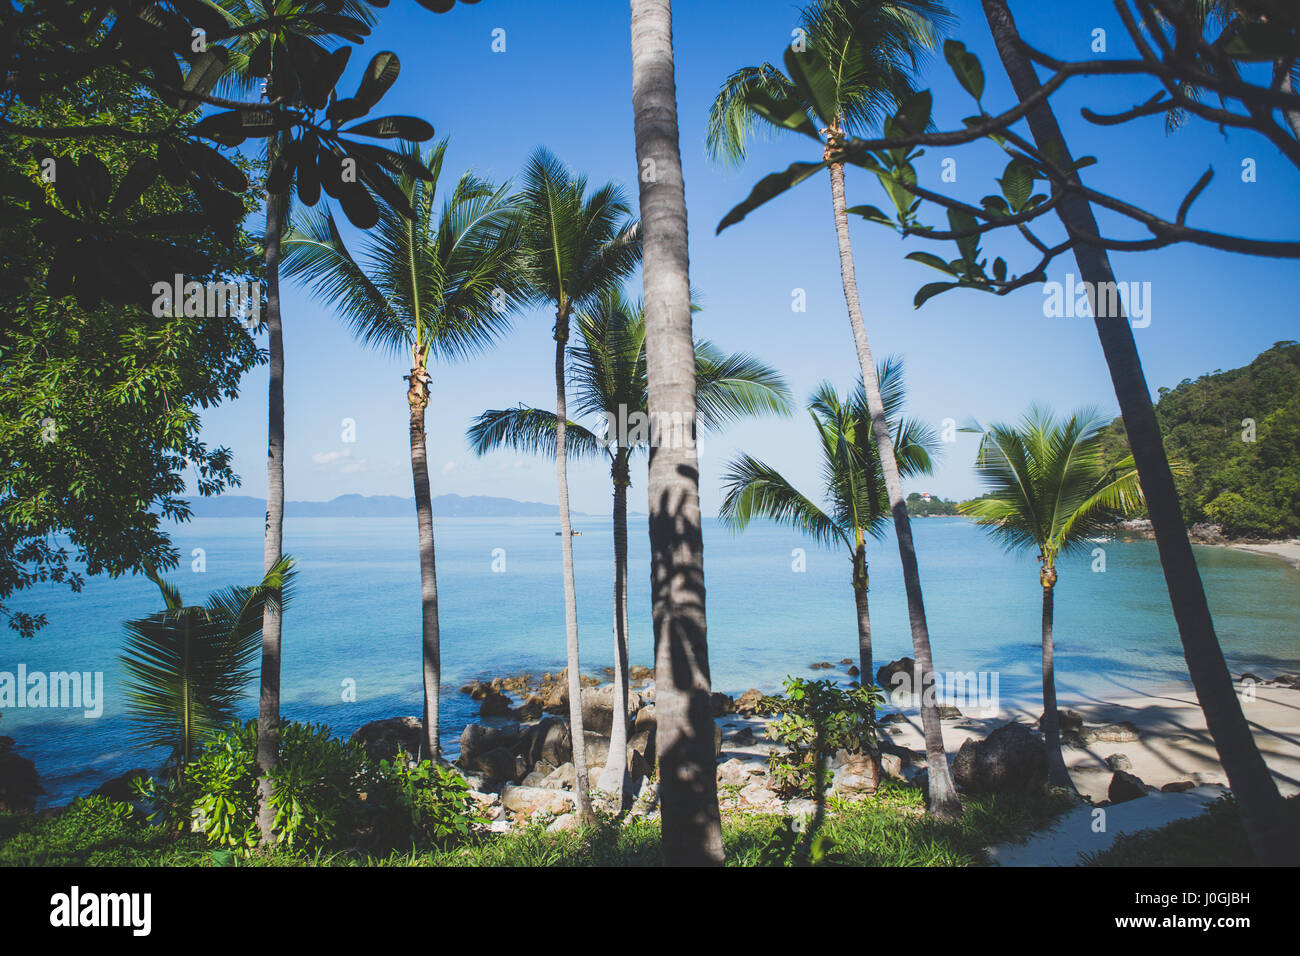 Private beach view with palm trees on a hot day - Stock Image